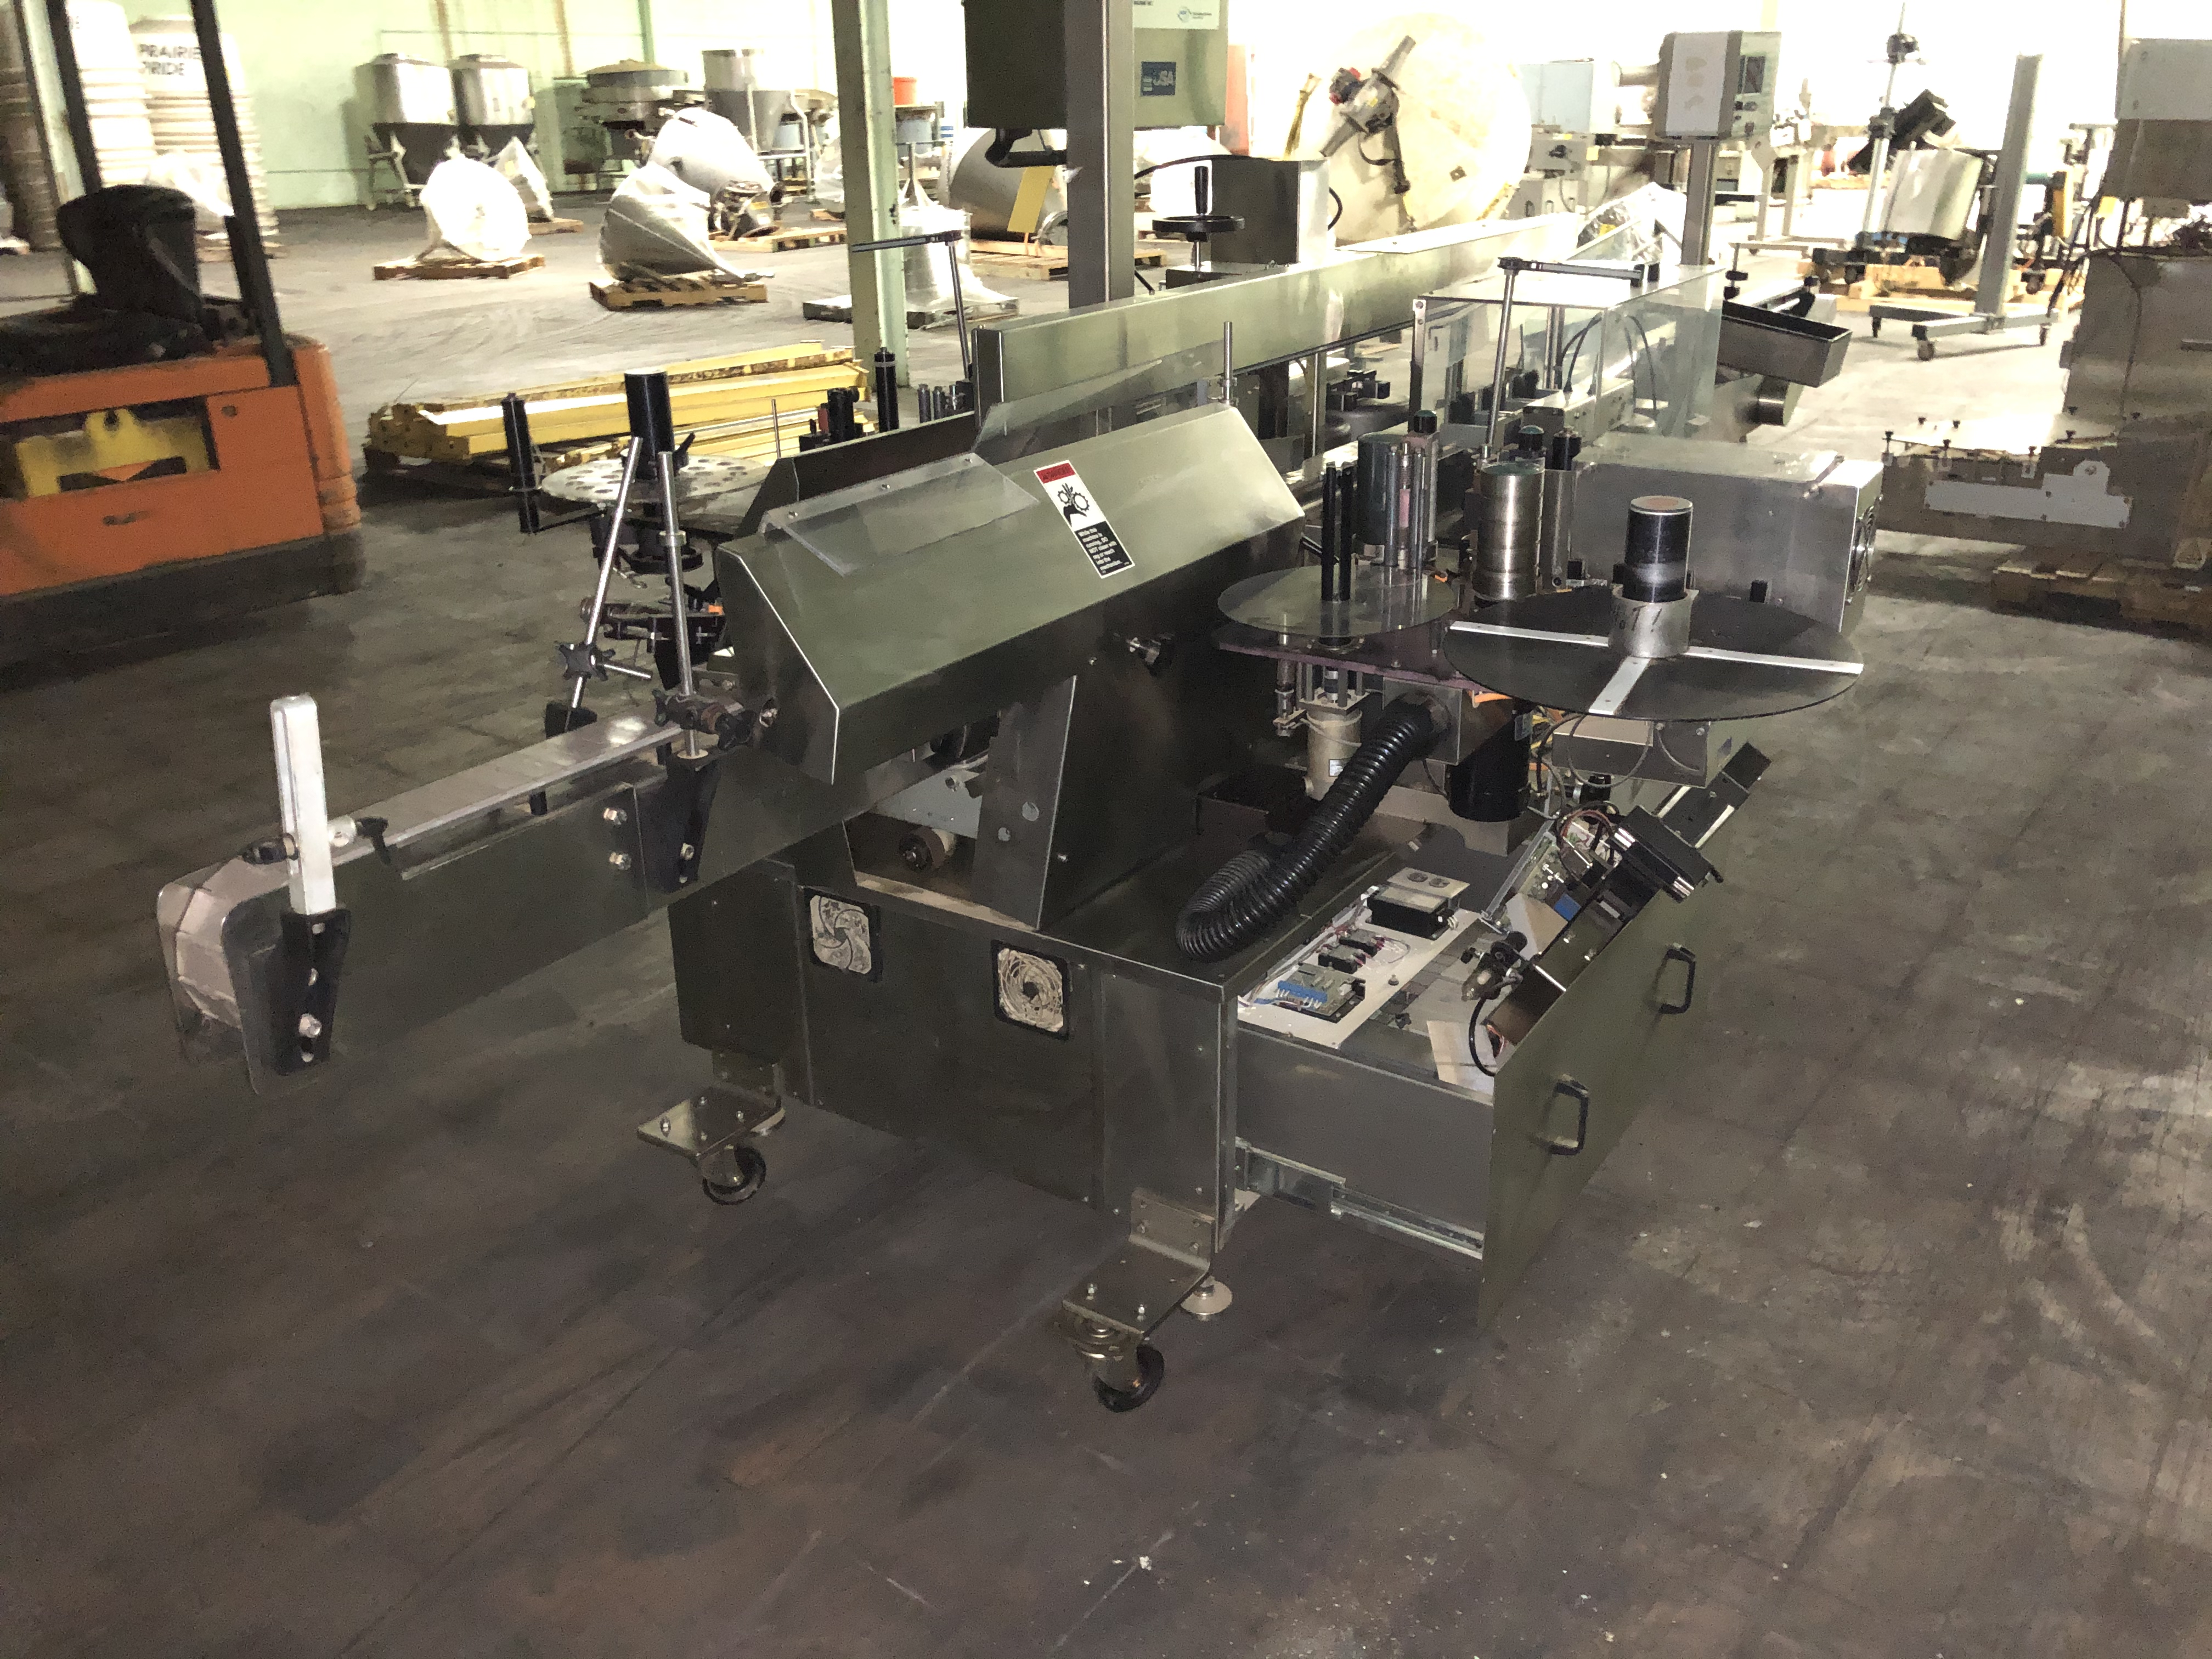 New Jersey Machine Model #34RLDBO-235-M98CO Packaging System, Allen Bradley Panelview 550 Control